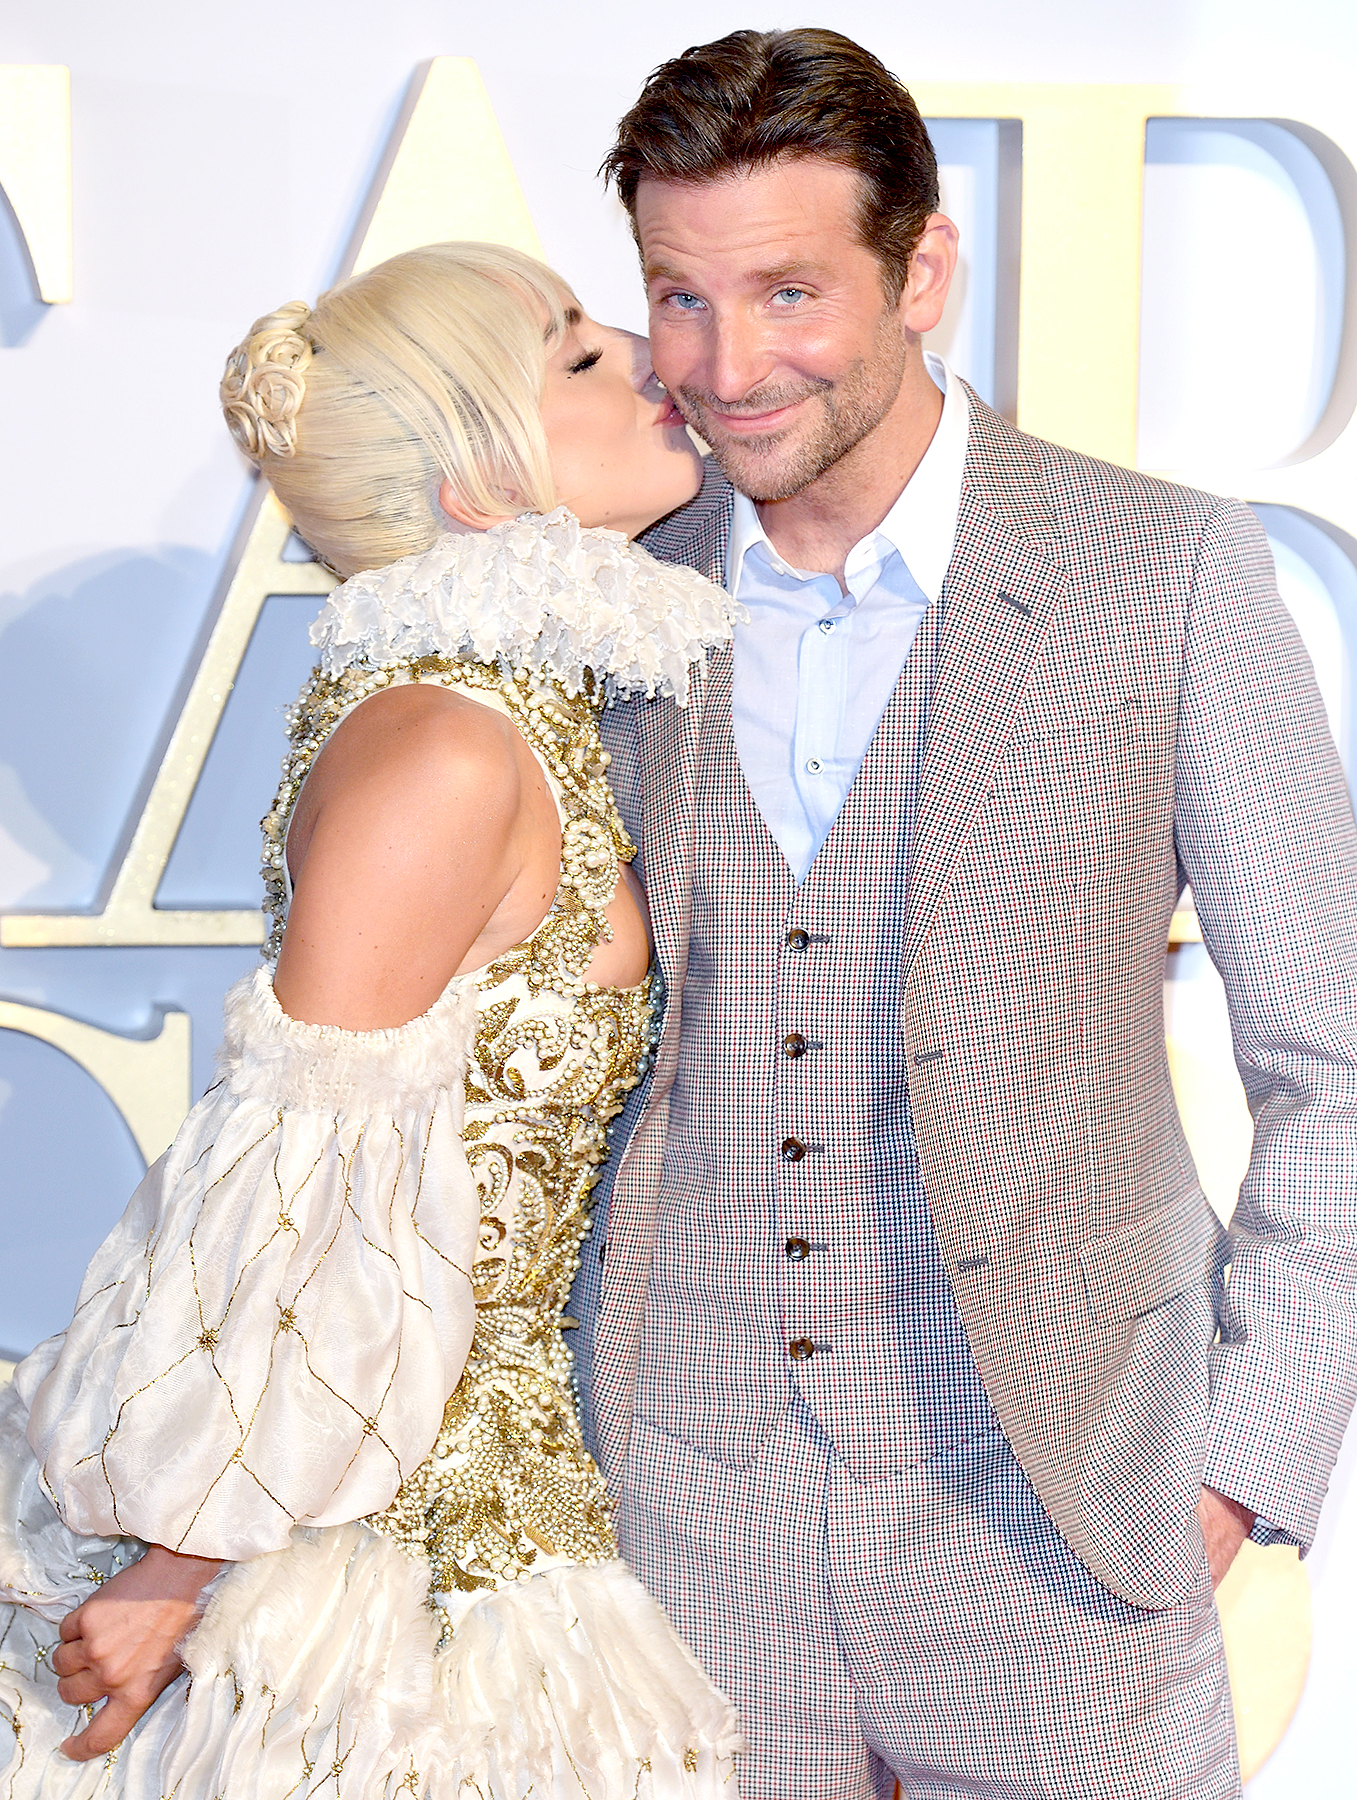 Bradley Cooper, Lady Gaga 'Really Got Into' Their A Star Is Born Roles: They Have 'Insane Chemistry' - Lady Gaga and Bradley Cooper attend the UK premiere of 'A Star Is Born' at the Vue West End on September 27, 2018 in London, England.